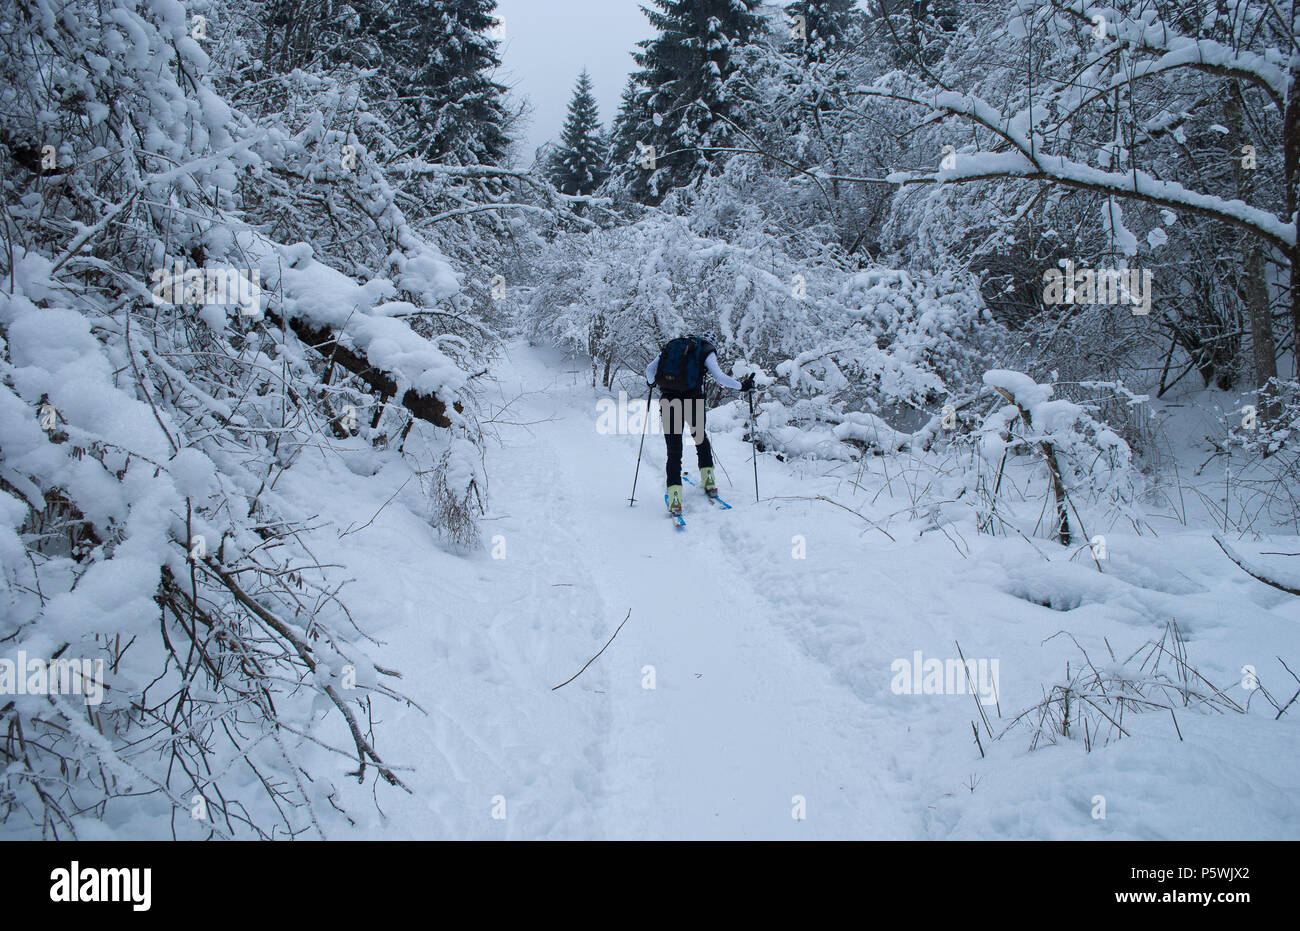 Man skis in the snow-covered forest Stock Photo